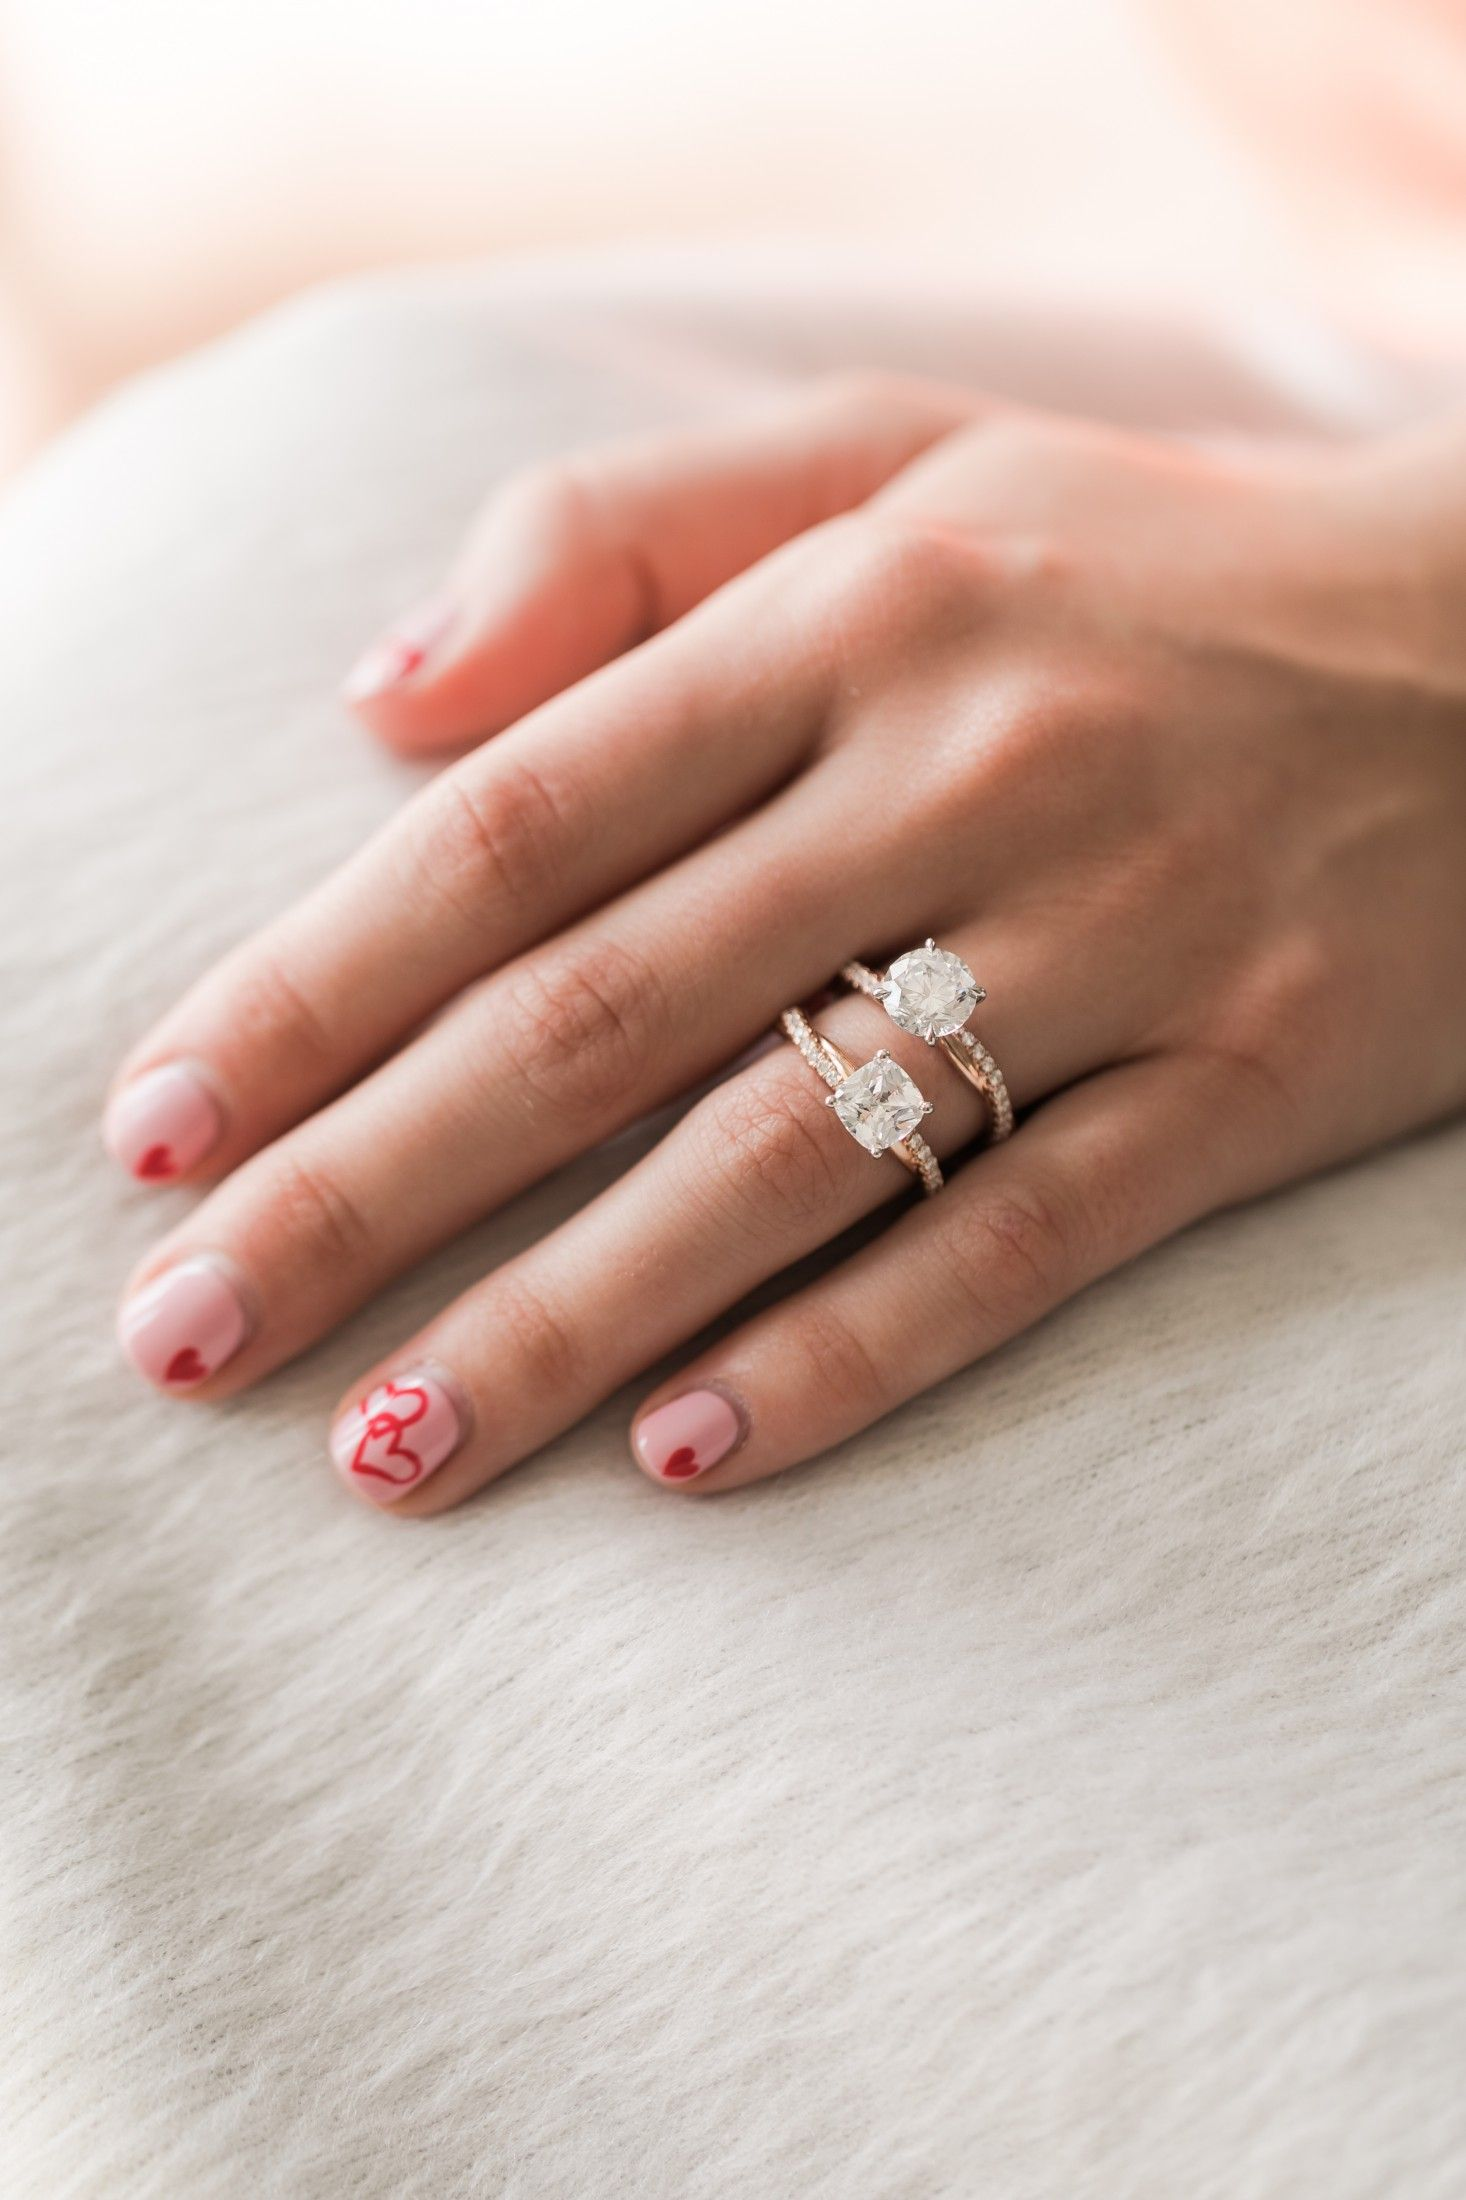 [ad] Every Bridetobe Deserves An Engagement Ring As Special She How To Designdesign  Your Ownwedding